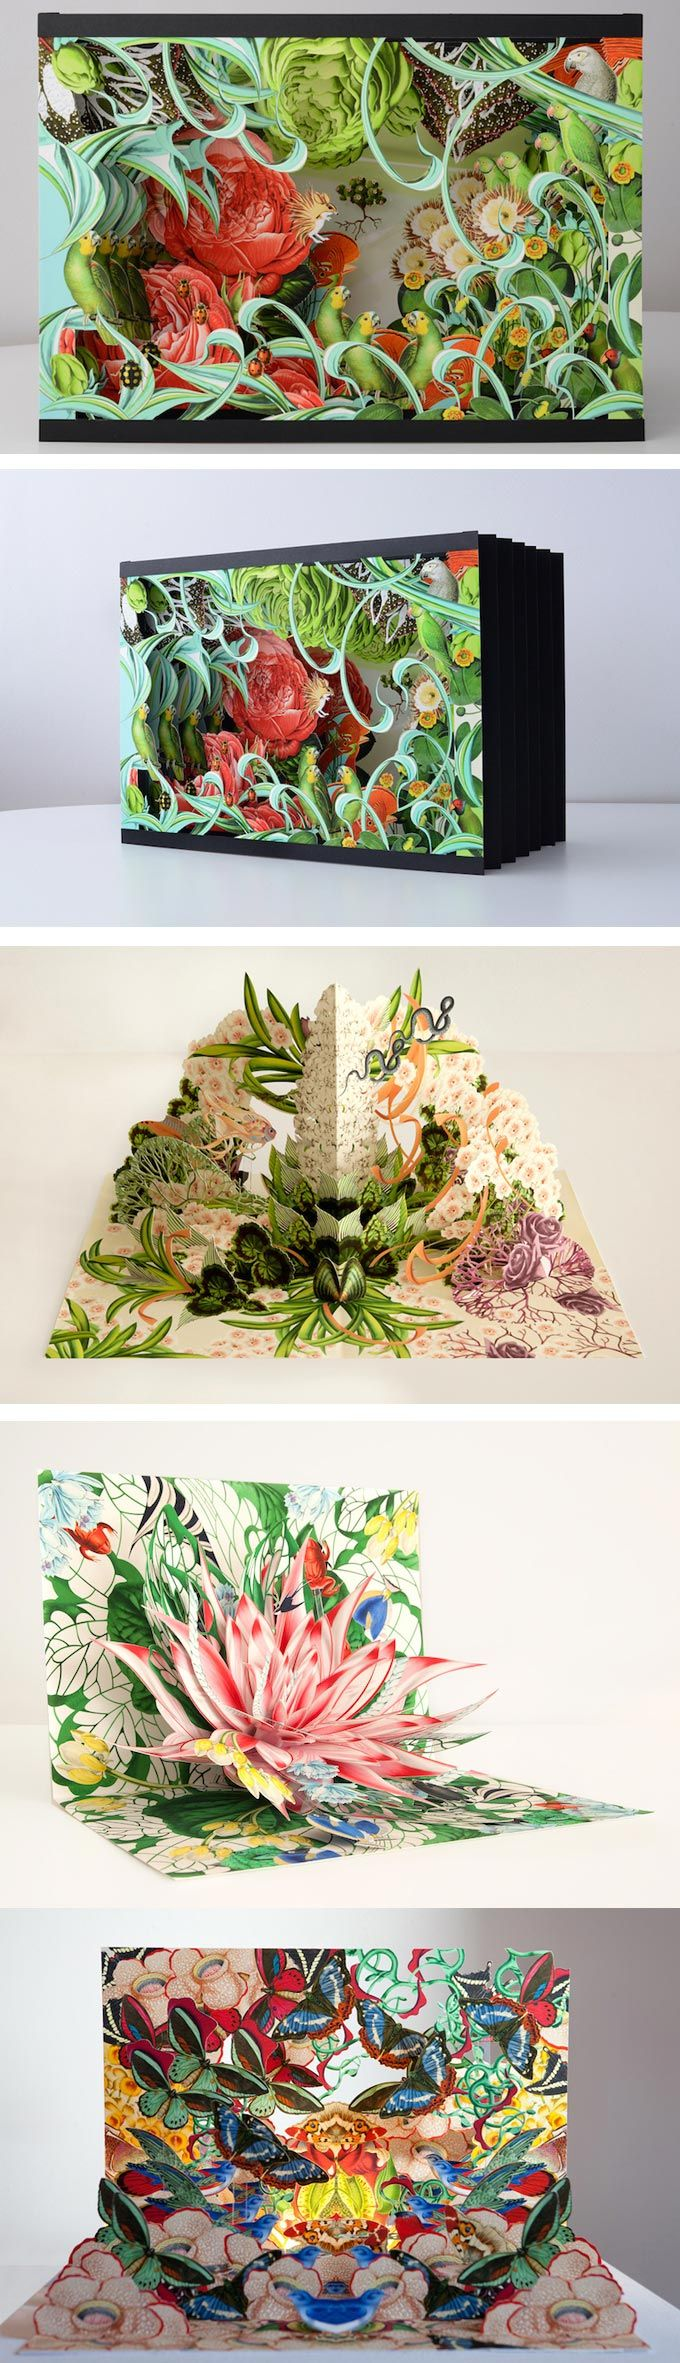 Bozka illustrates and hand-crafts pop up and accordion books. They take between…